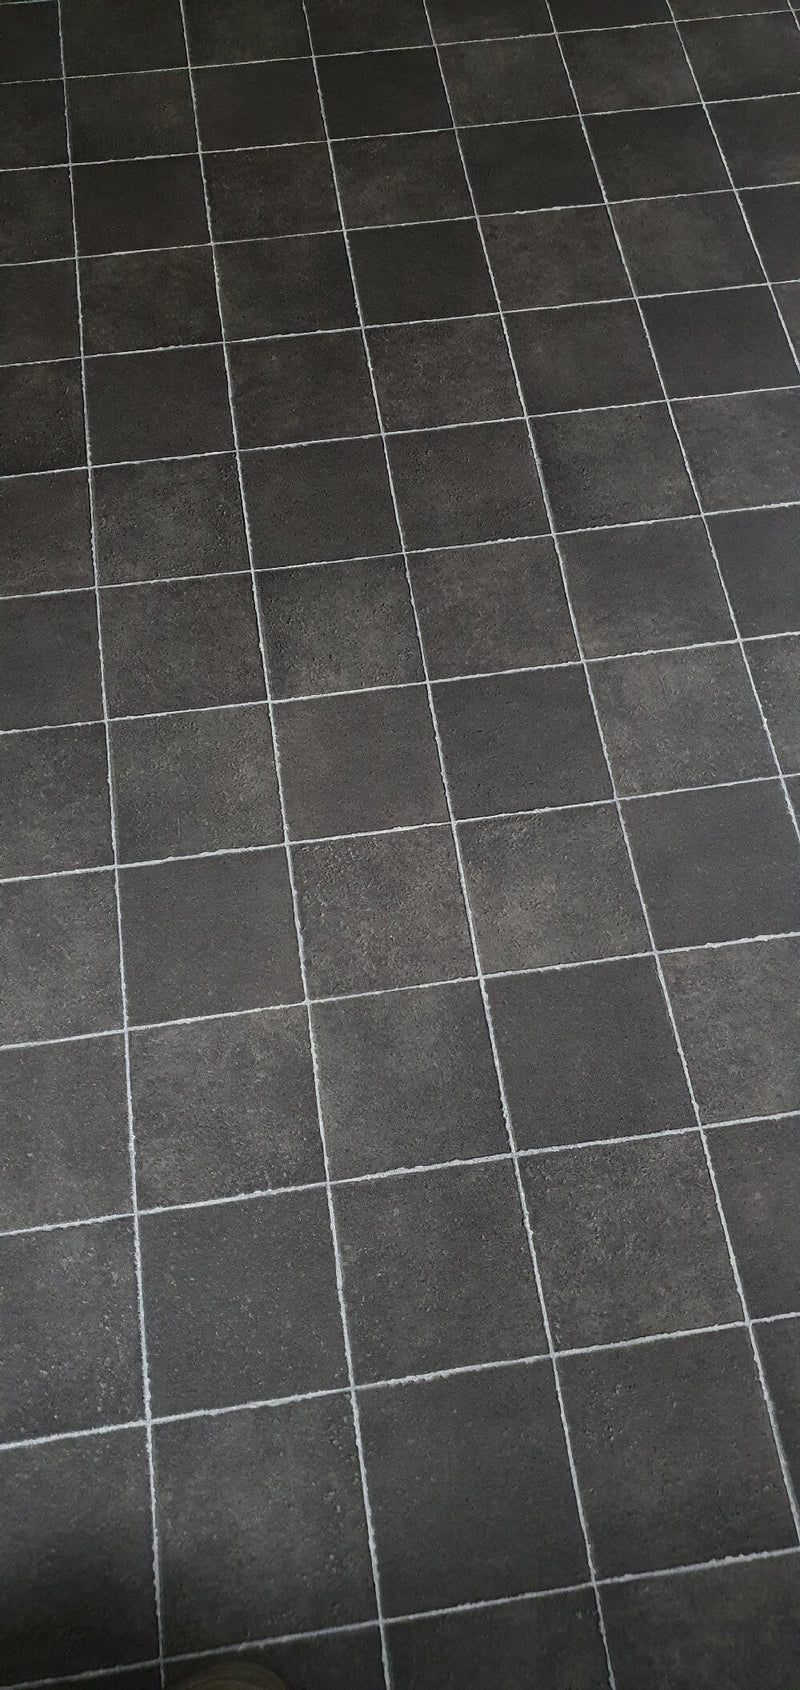 Pompei D 599 Eco Vinyl Lino Flooring 4m Width Square Metre Price is £7.95 - Decoridea.co.uk